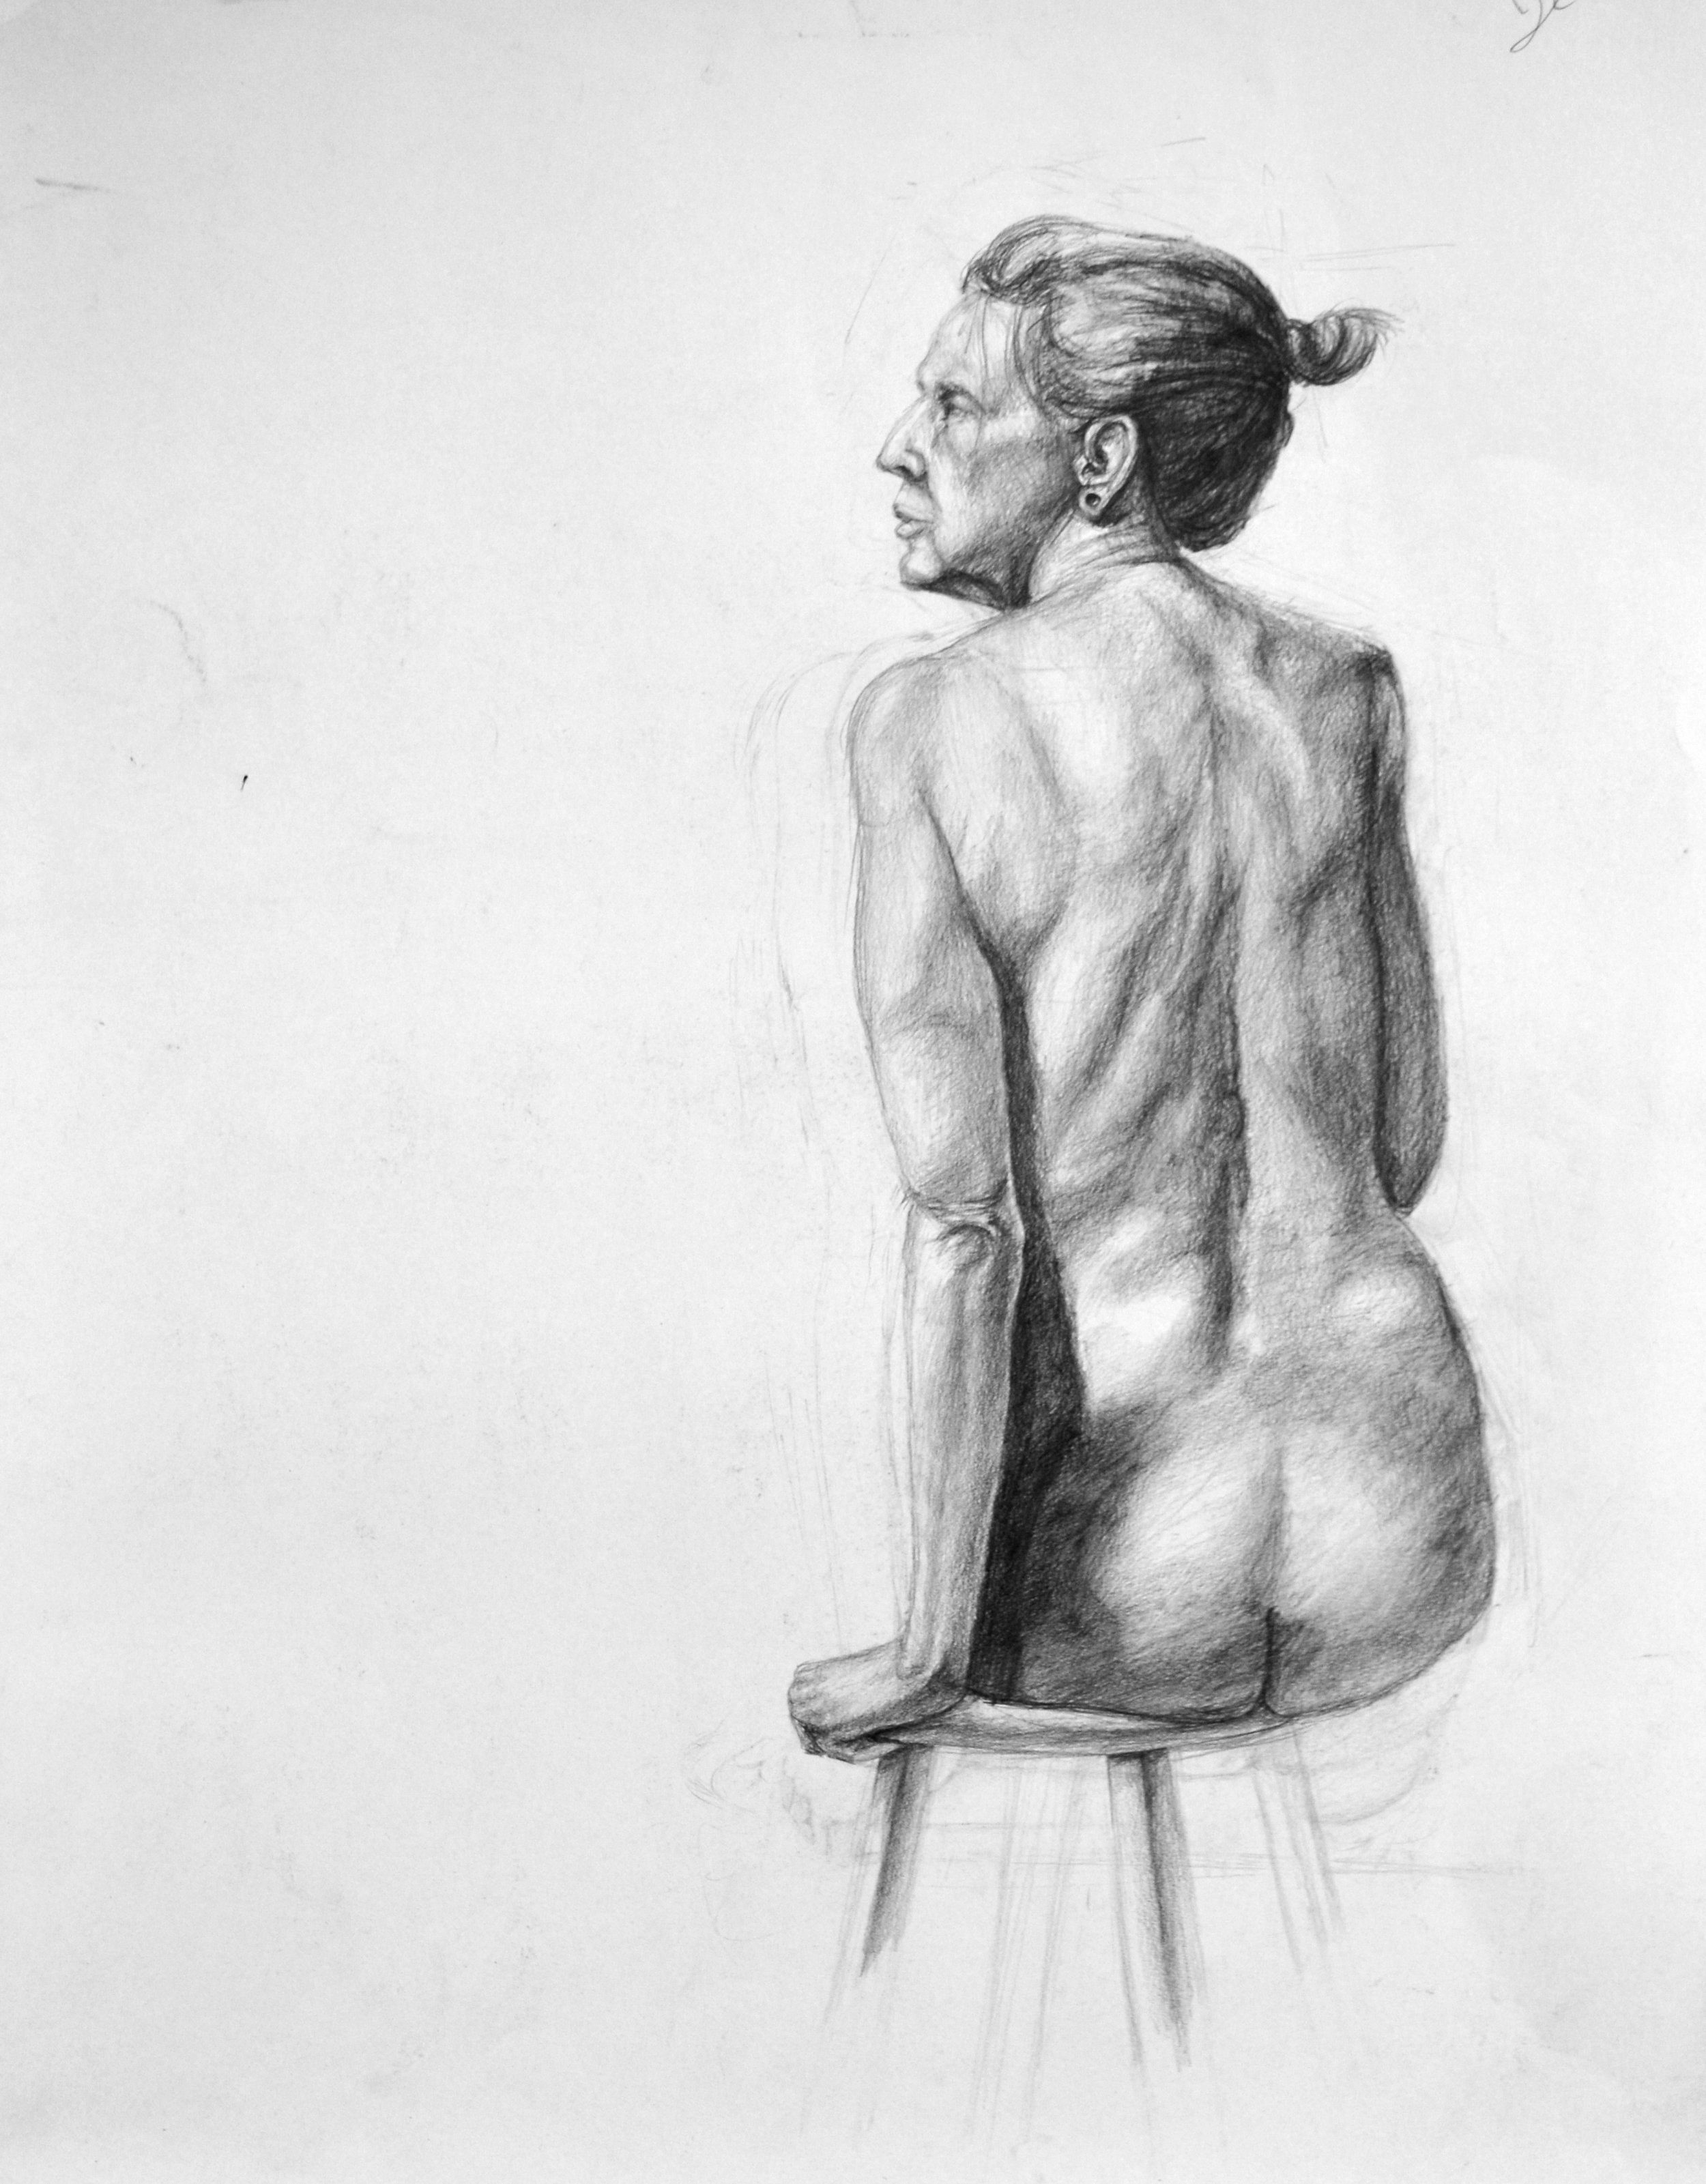 Highschool Figure Drawing, Pencil on Paper